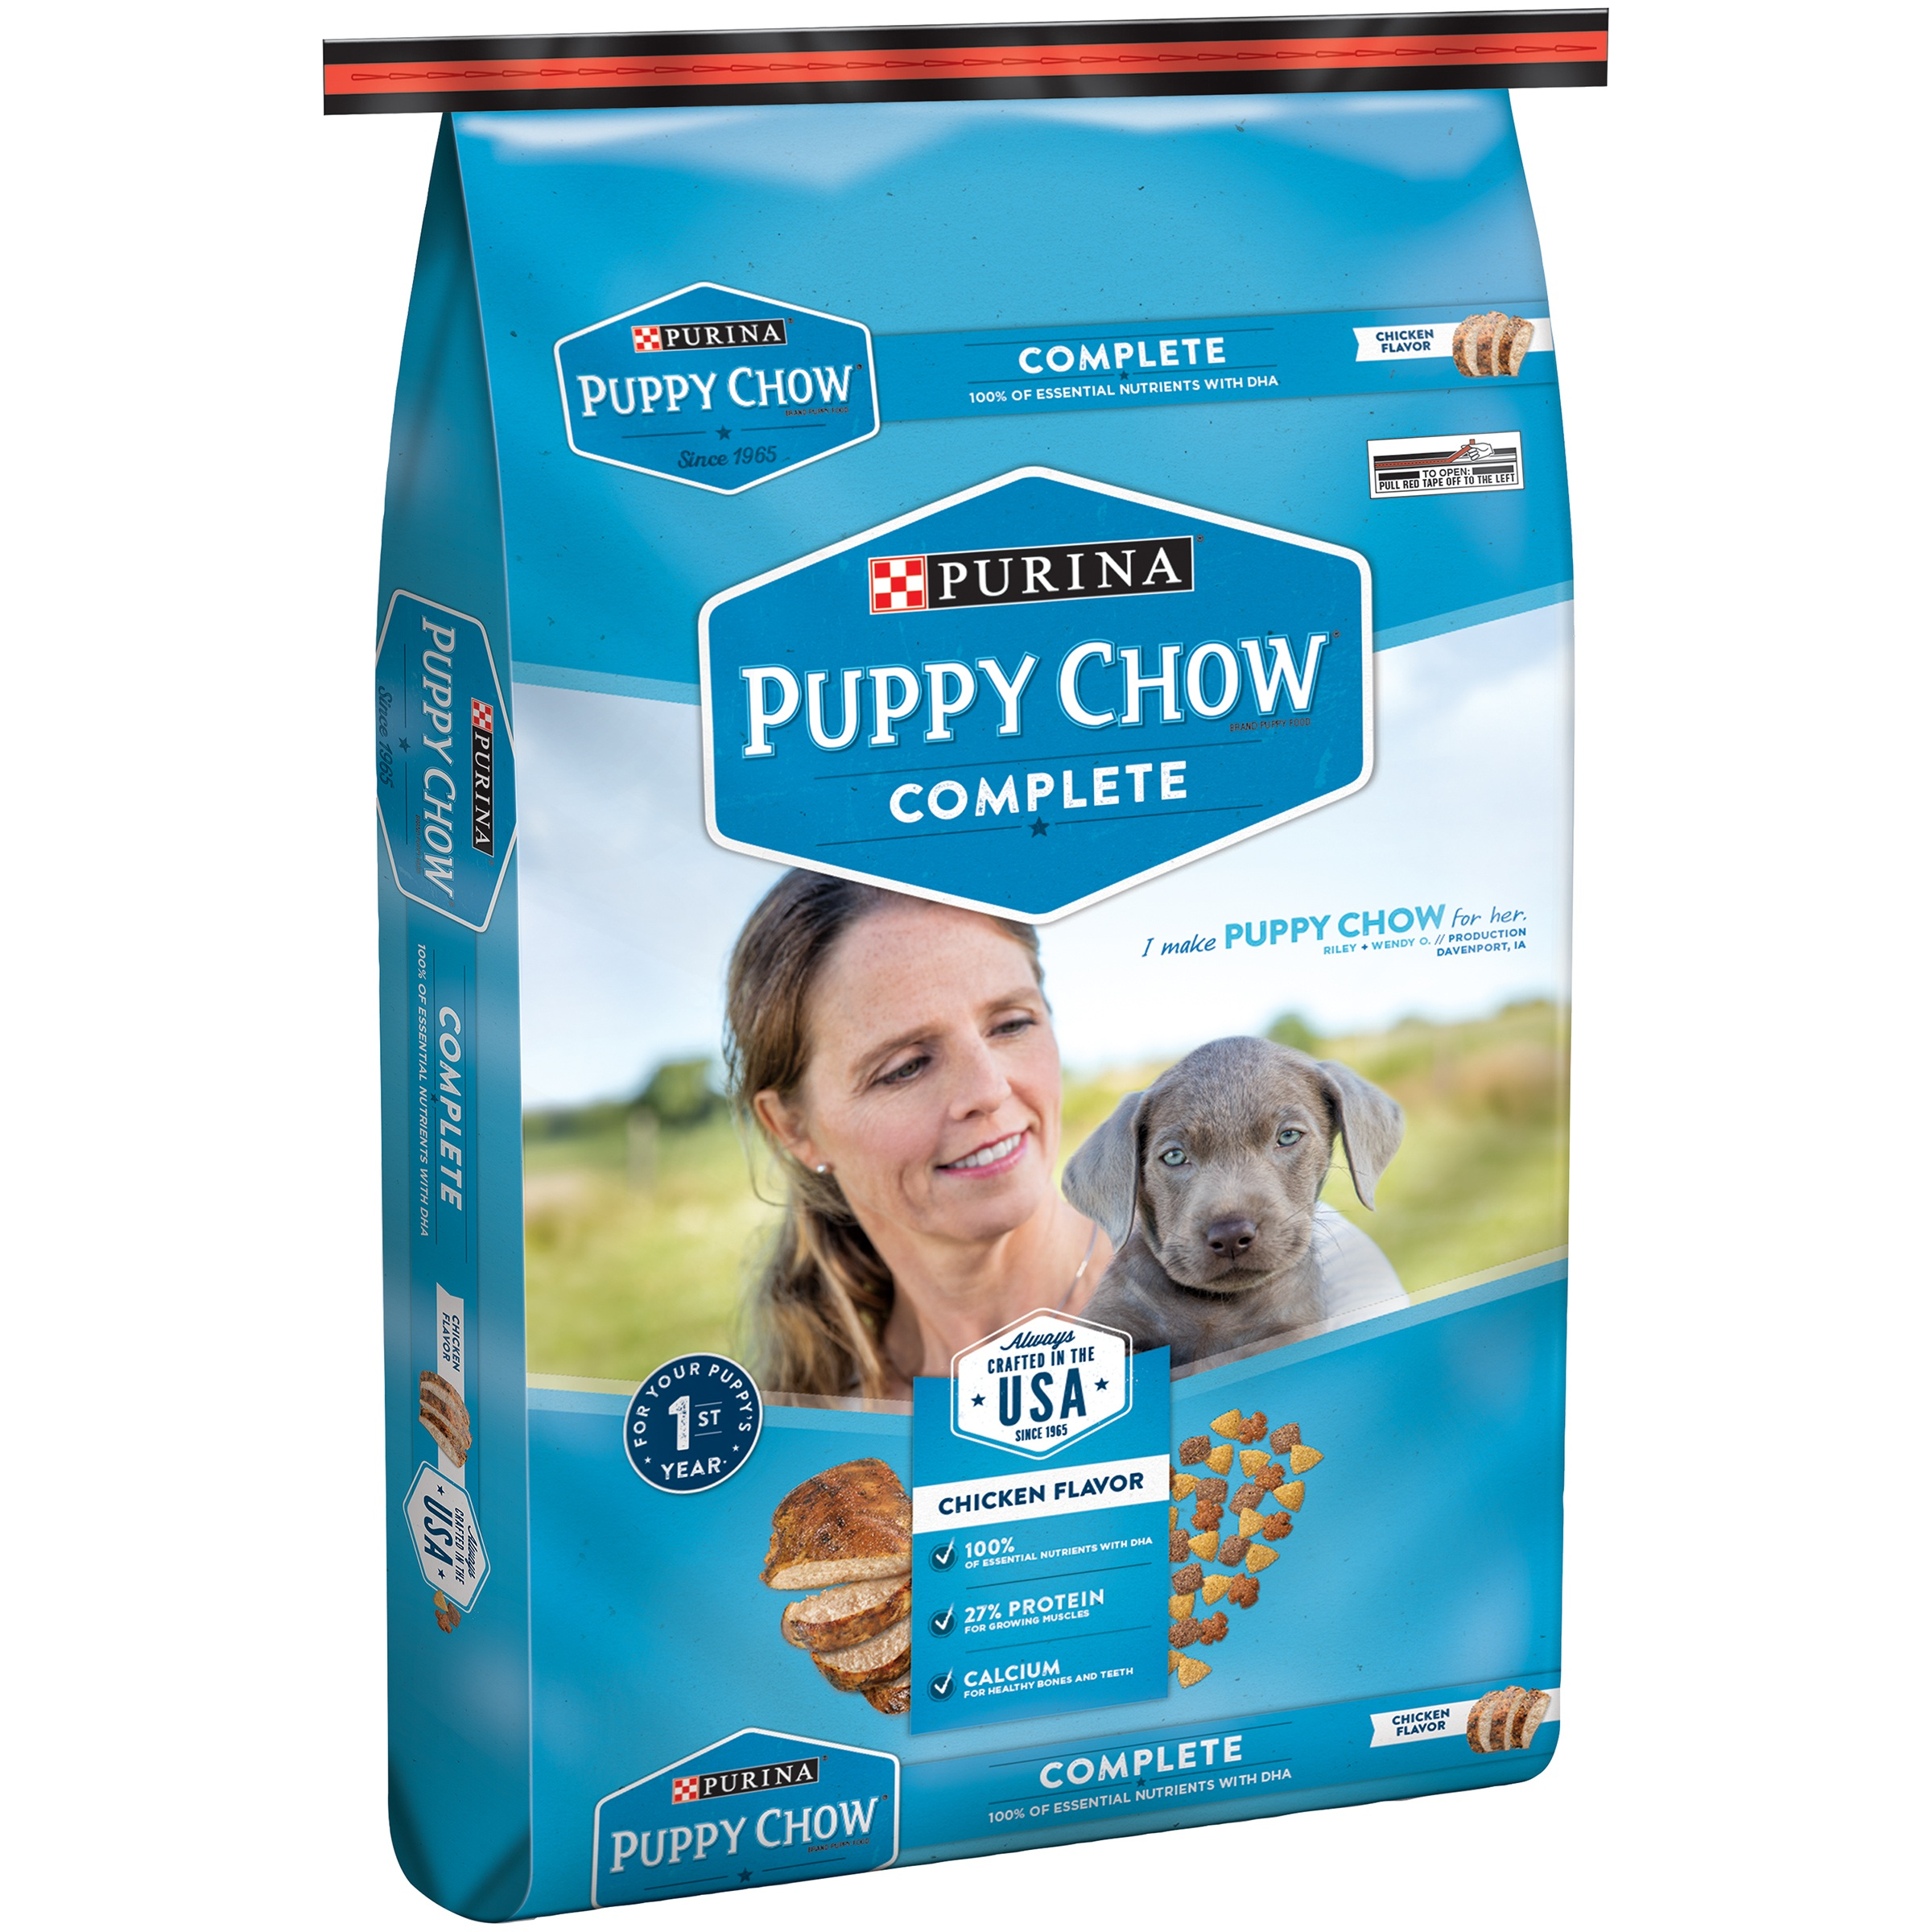 Purina Puppy Chow Complete Dry Dog Food, 16.5 Lb.